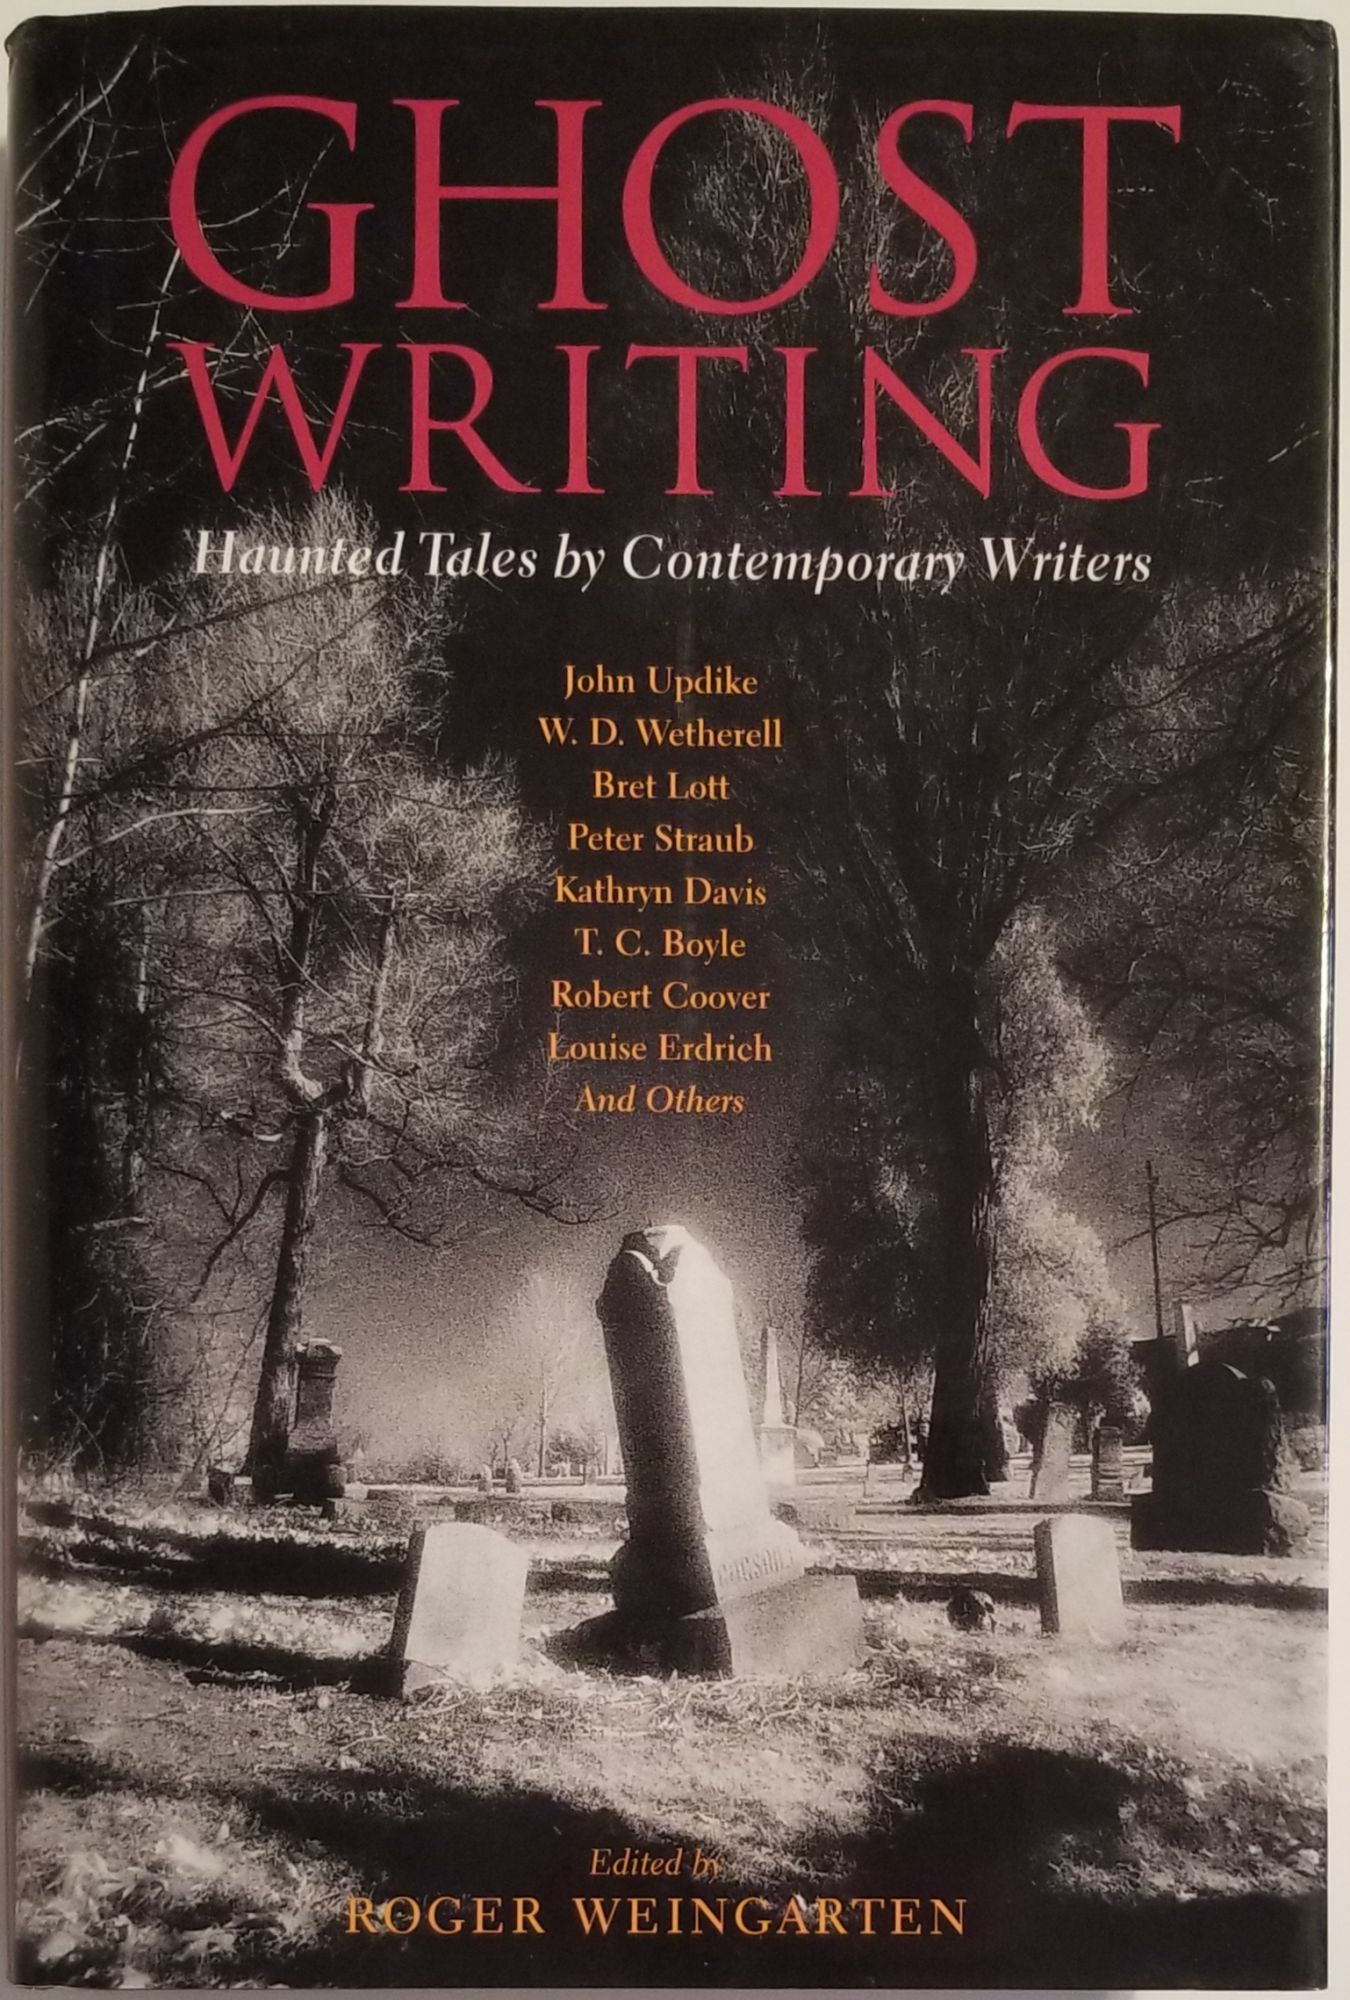 GHOST WRITING. Haunted Tales by Contemporary Writers. Roger Weingarten.